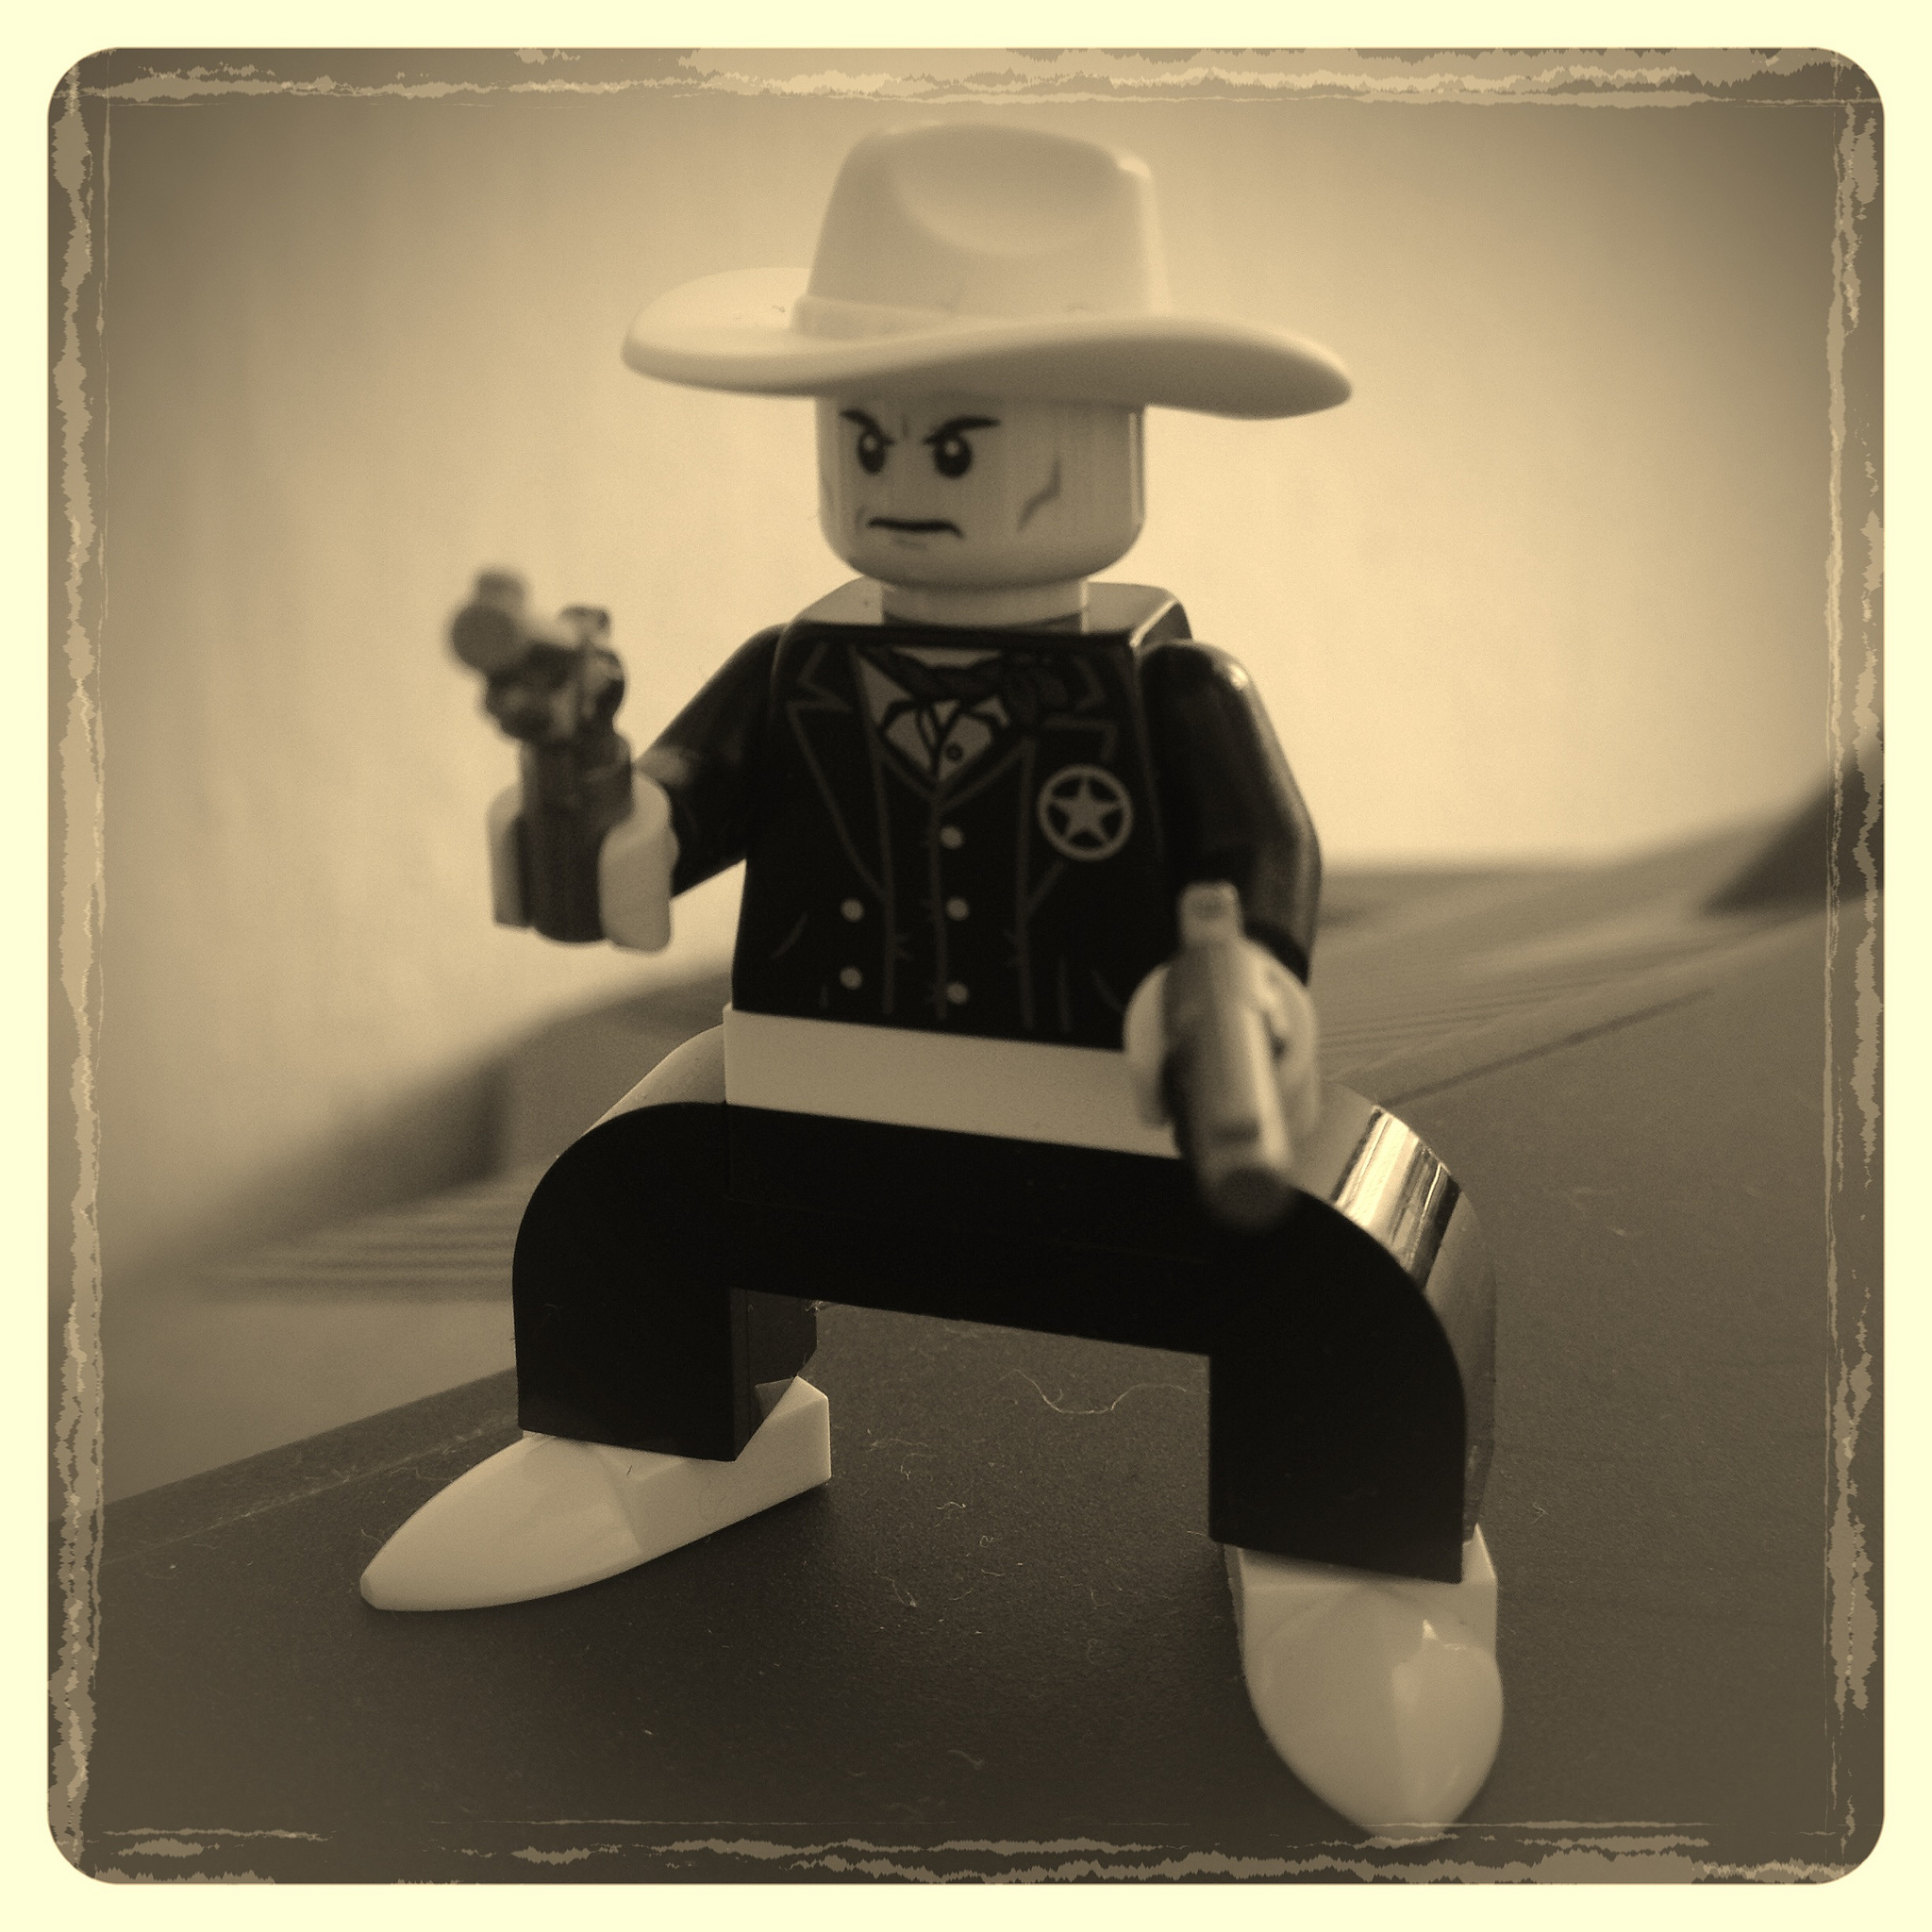 Sheriff Foto: Flickr/the_jetboy (CC BY 2.0) https://www.flickr.com/photos/biplex/9598334566/in/photolist-fCaYt1-2baSgk3-nMR2Np-j3eYpq-fdCMeC-iVvTto-p8AvDq-5ejdhH-az3EPj-jgukHm-iVy8H3-fszzi3-252GW4k-fscv6v-4uaqGB-QSFrvm-byRRRk-c6FSsu-6SicVz-29bNfkY-oZW9Na-esAk3Y-nmr6JW-f4Ezcx-5M4cDX-kPEK3g-mNJPBr-252tPa7-k2FMY1-bHr3qk-hFNmj-fbUk91-f4EBMD-iVwrmS-f4UBMQ-3ogQSw-eN5adj-eB4oY-6Ta3tC-4jJw2X-W7t6mW-oGjBmm-dJDGZQ-jgsr72-f95Y26-iVwnxQ-dMchz8-k2DL1B-az32zo-f95XZ8